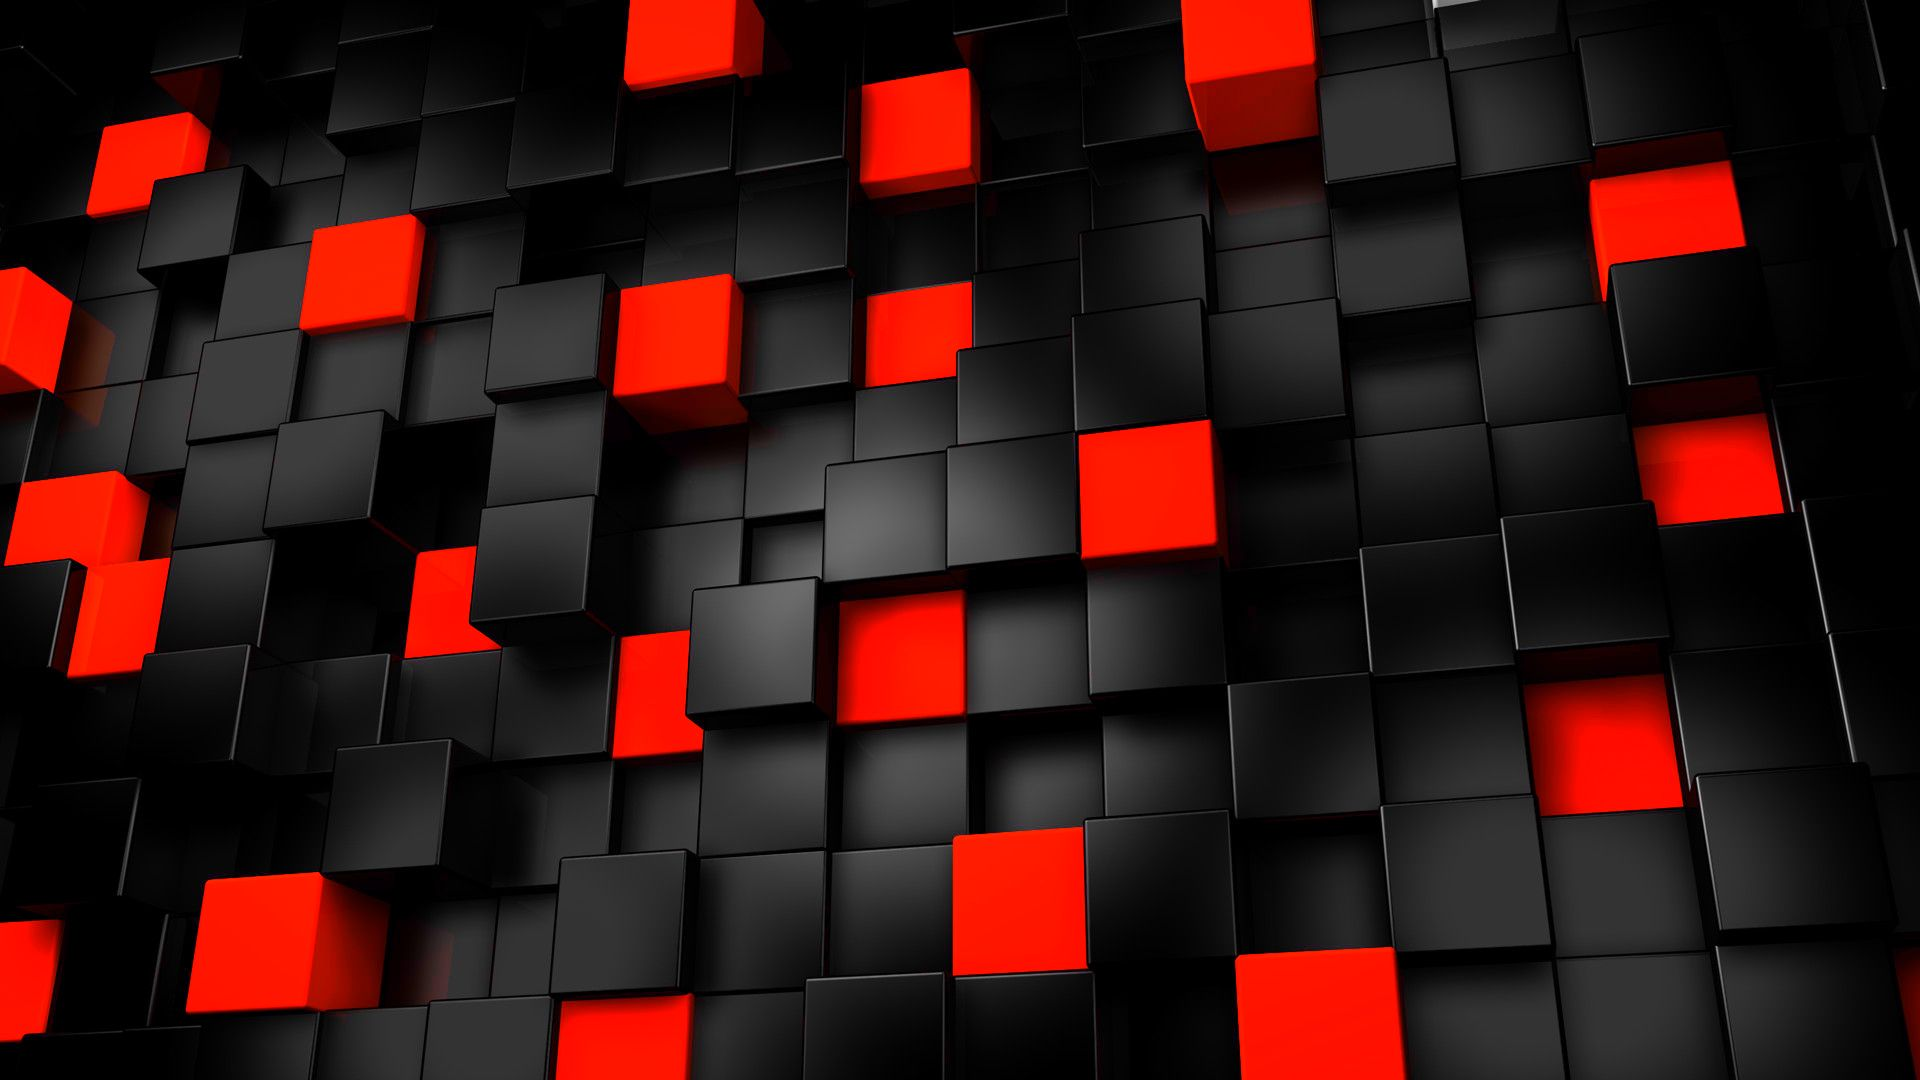 Image For Abstract Art Black And White Red Wallpaper HD 1080p